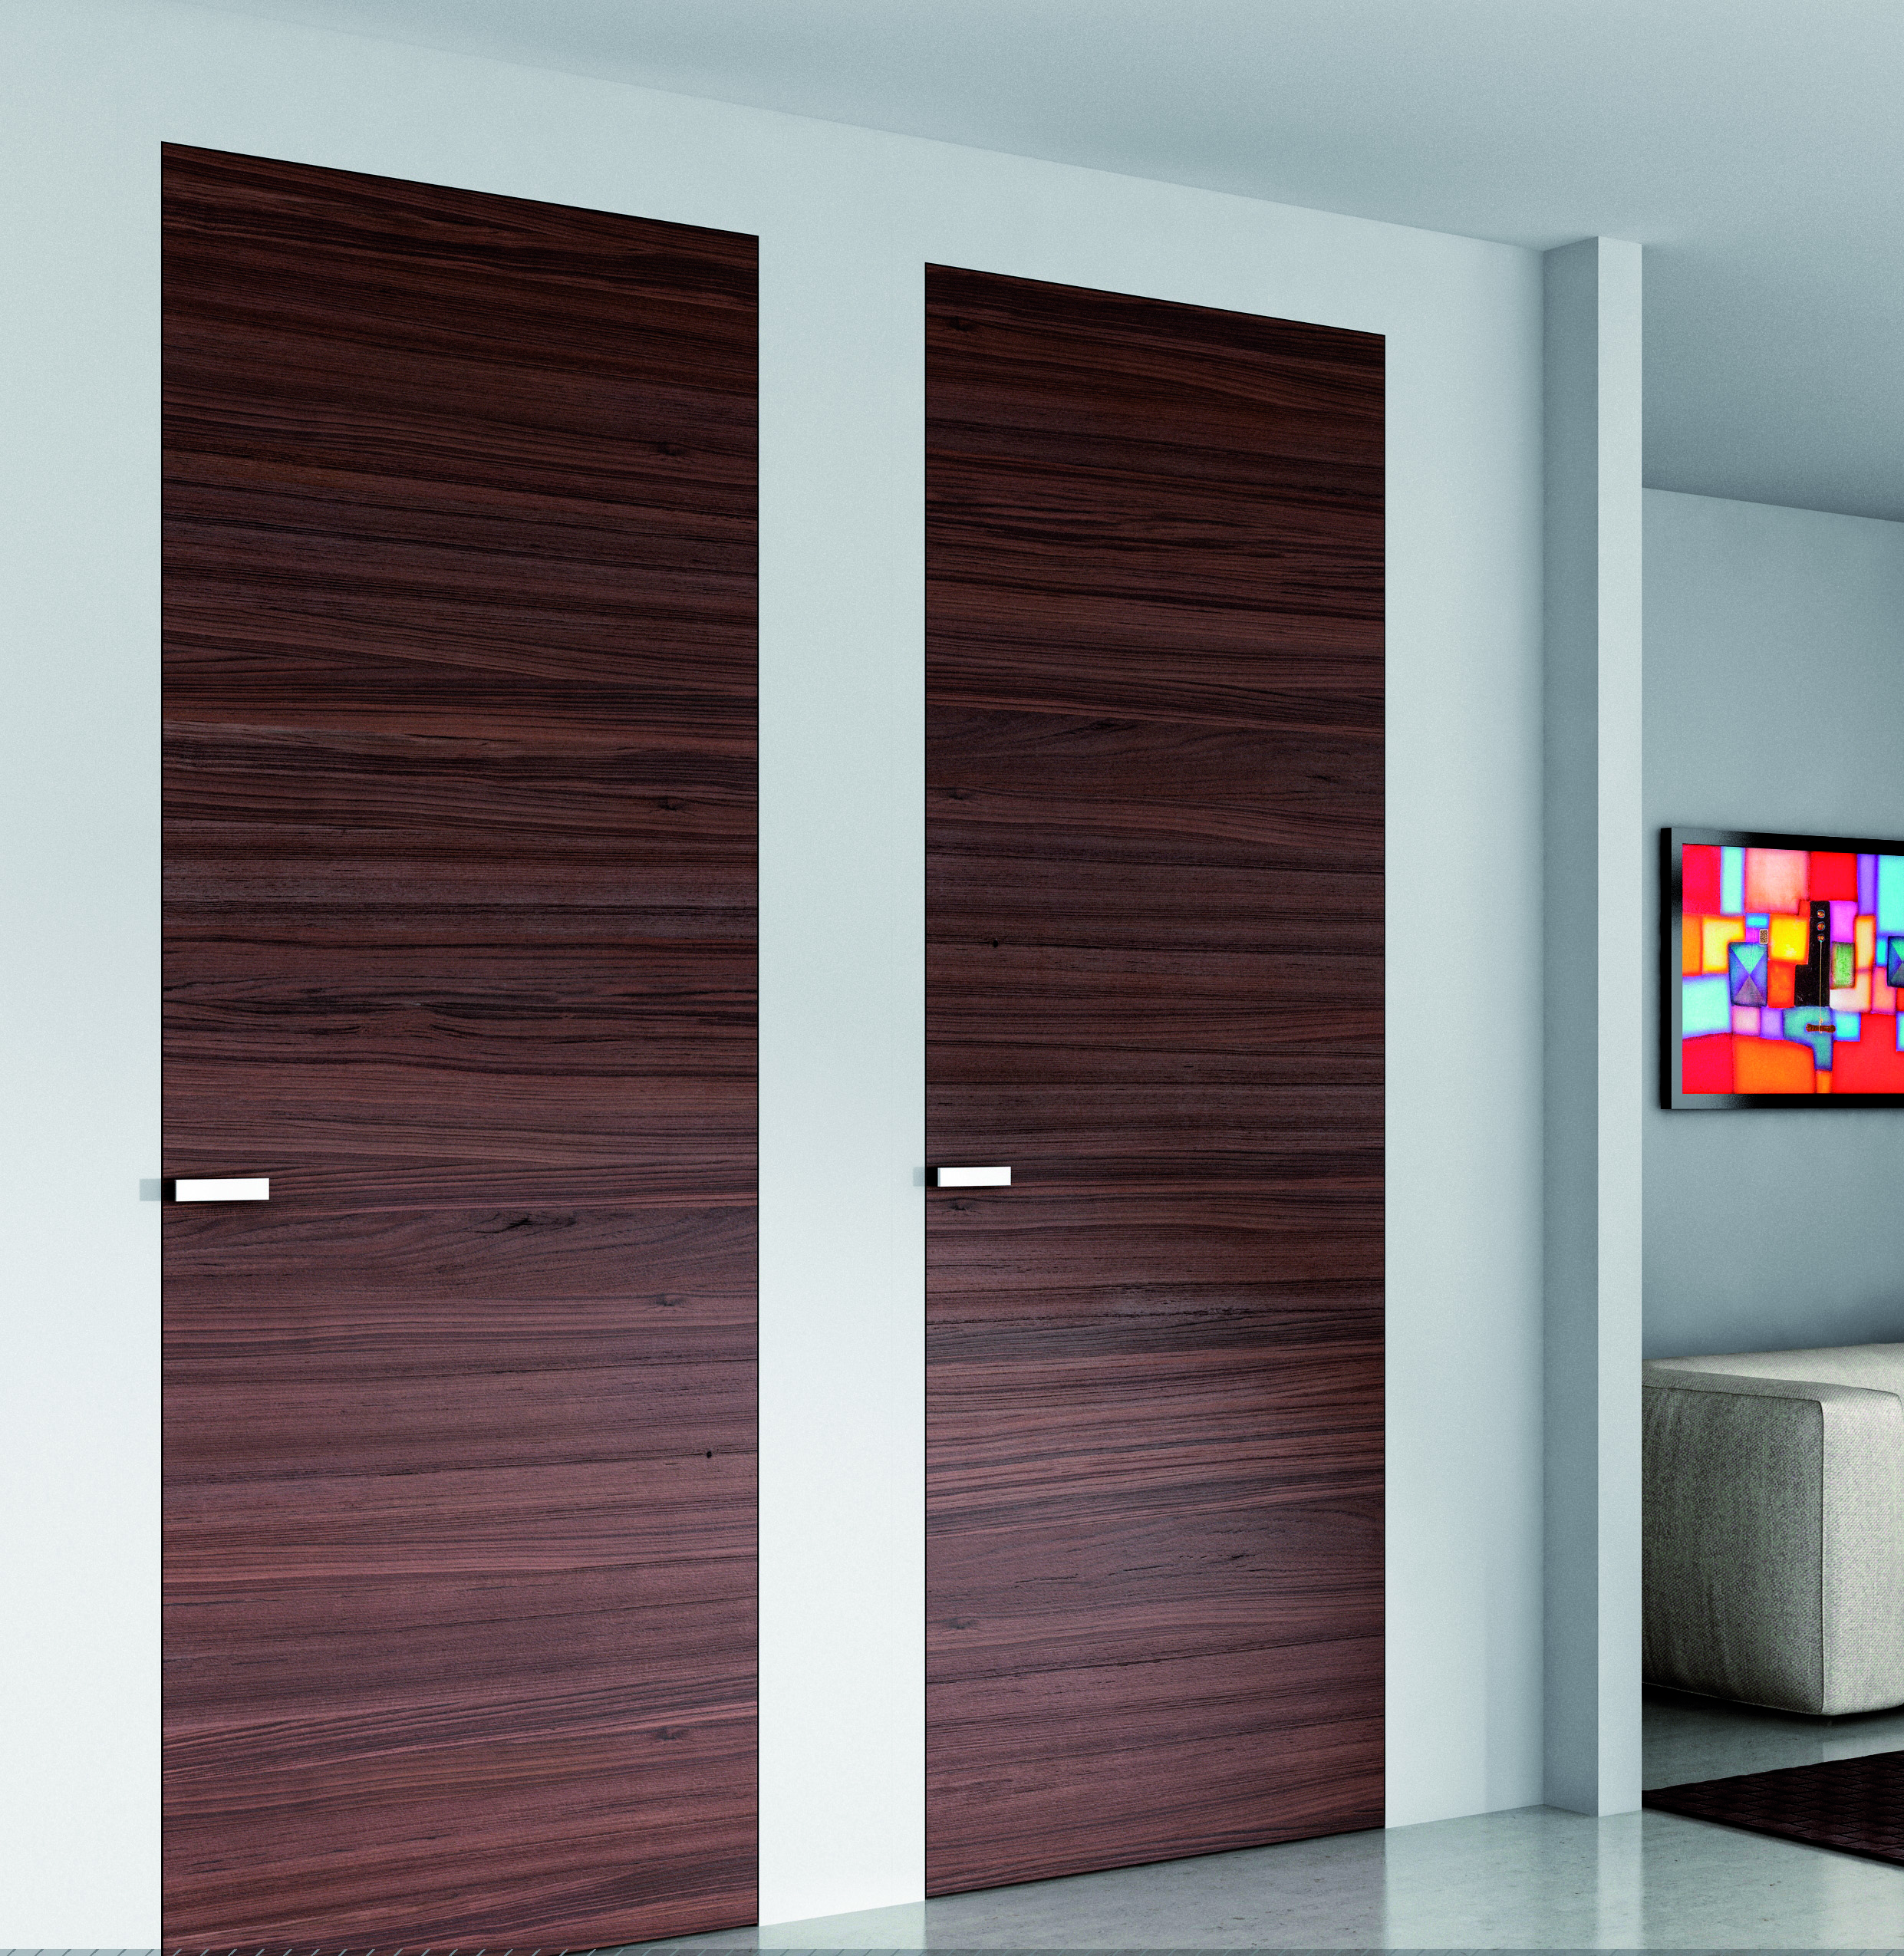 Porte int rieure authentique contemporaines standard ou Porte interieure sur mesure